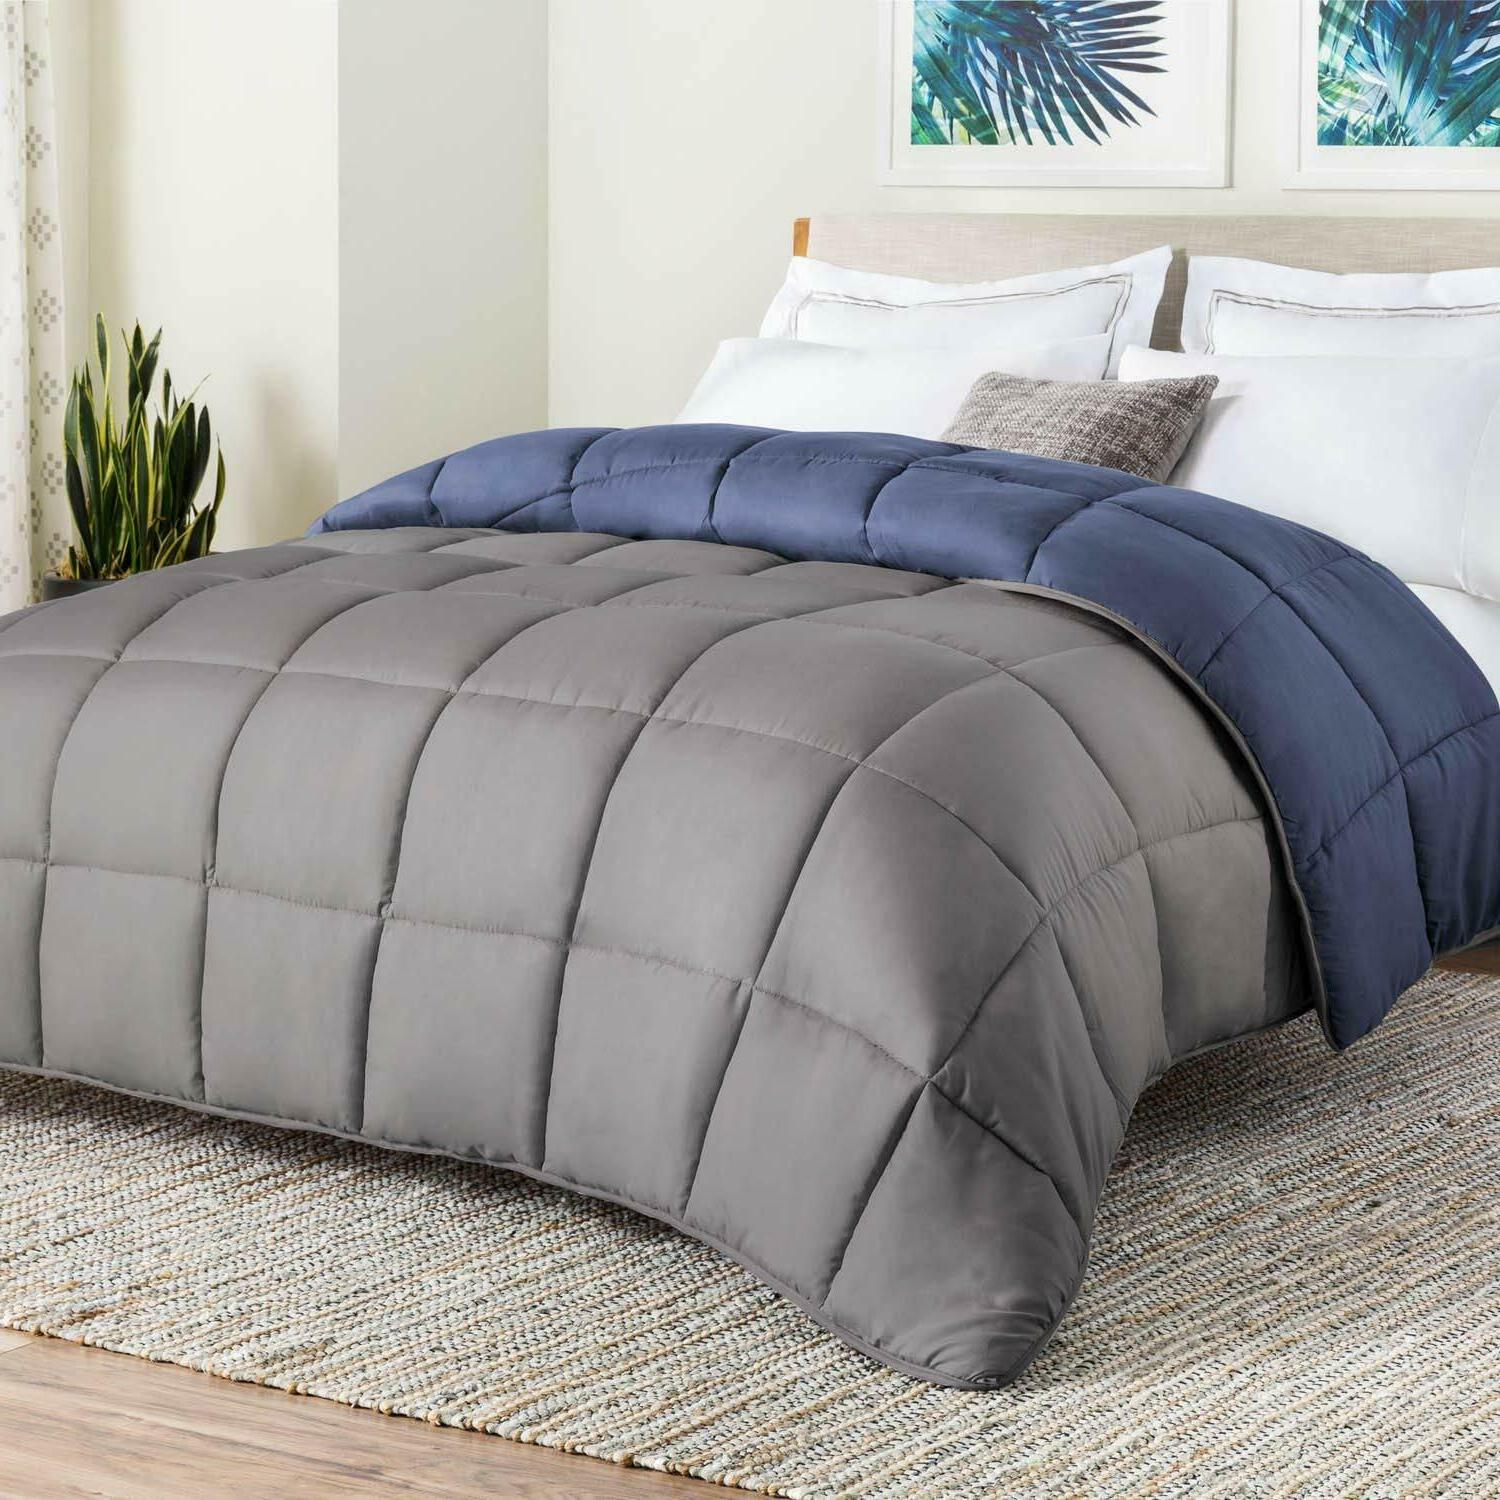 LINENSPA Comforter All-Season Reversible Quilted Plush Micro